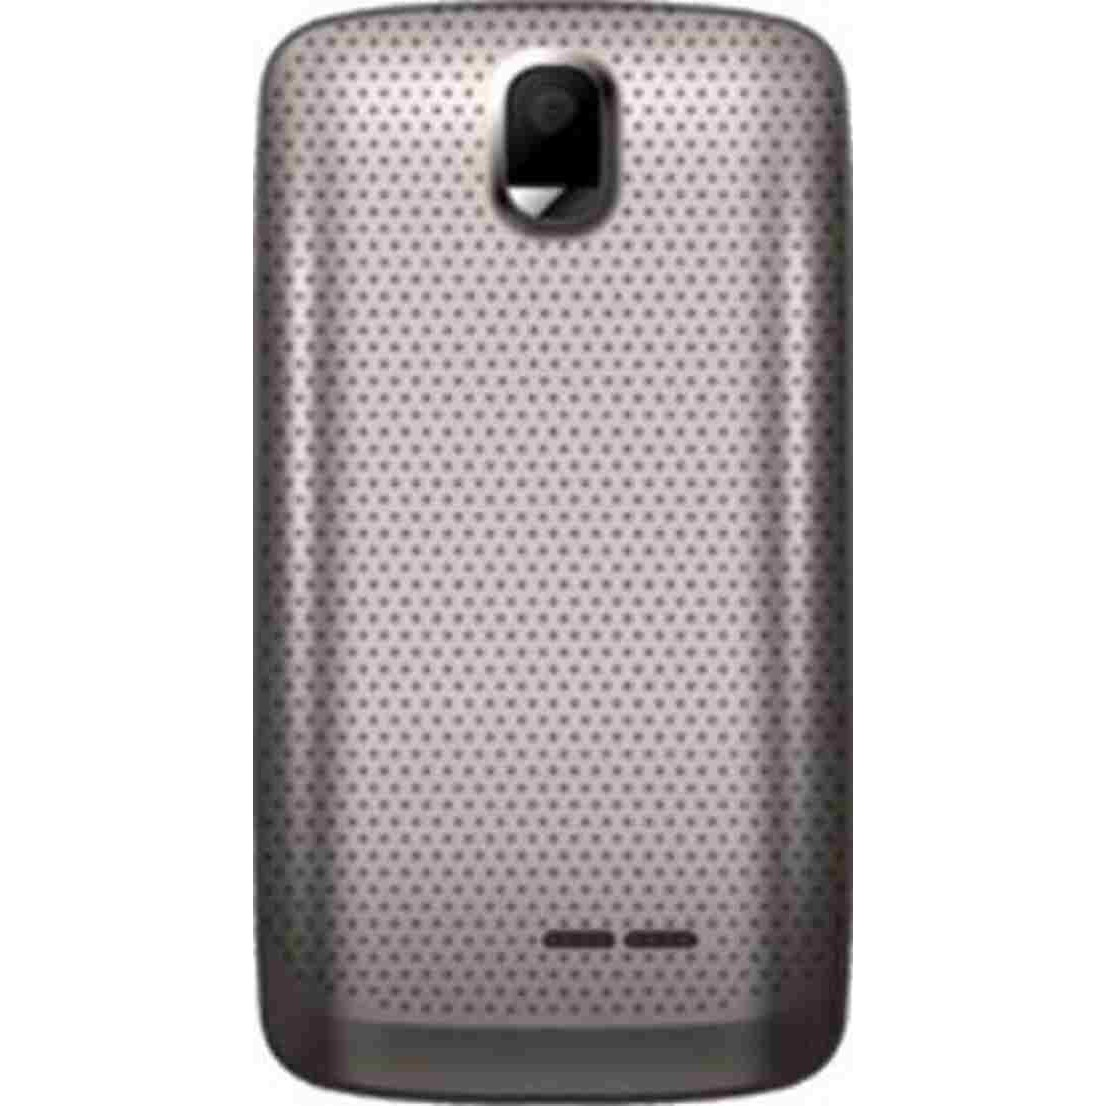 on sale 8519b e3f52 Back Panel Cover for Micromax Bolt A24 - White